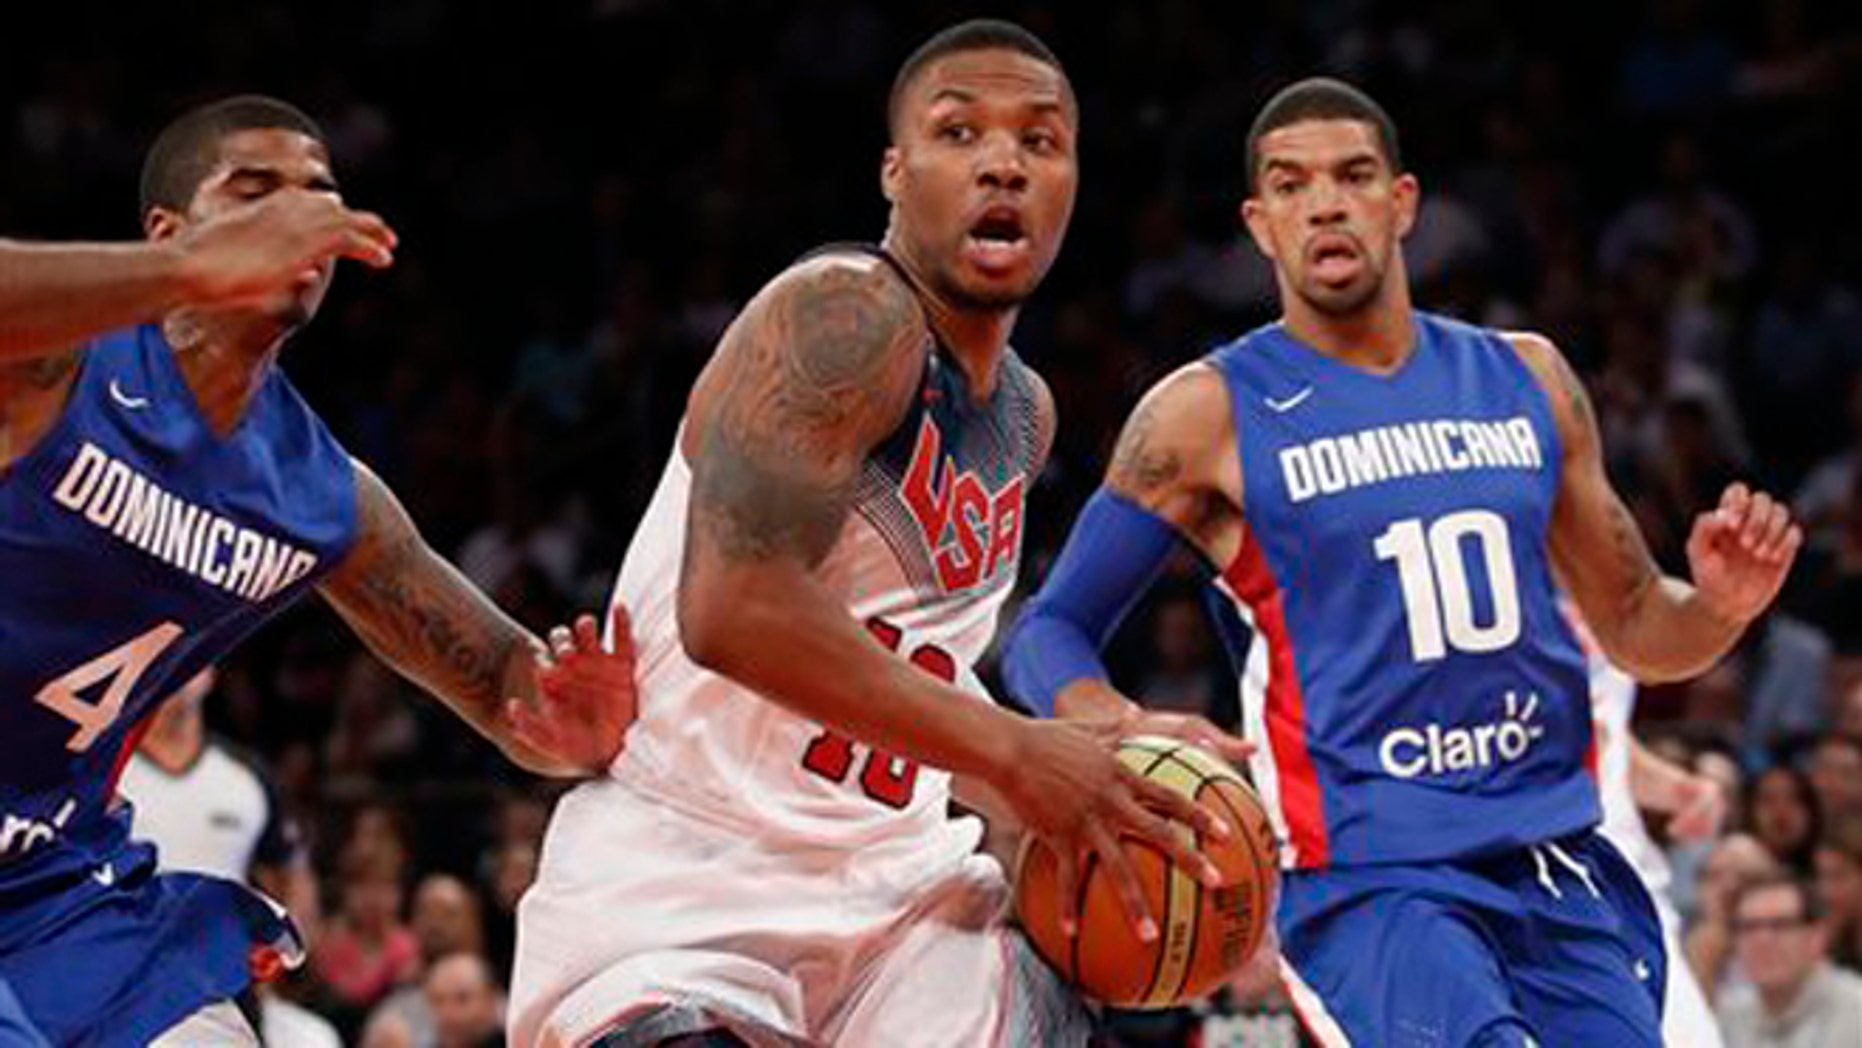 Dominican Republic guards Edgar Sosa (4) and James Feldeine (10) defend as United States guard Kyrie Irving (10) looks to pass while heading toward the basket in the first half of an exhibition basketball game at Madison Square Garden in New York, Wednesday, Aug. 20, 2014. (AP Photo/Kathy Willens)